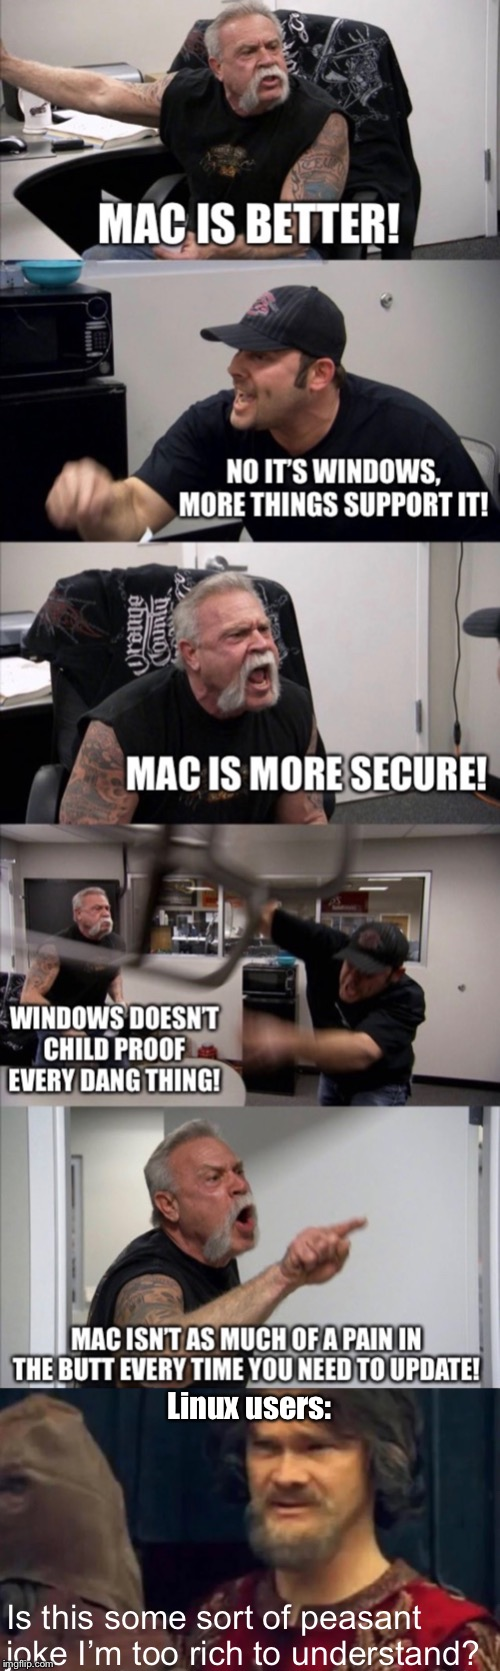 Linux master race |  Linux users:; Is this some sort of peasant joke I'm too rich to understand? | image tagged in is this some sort of peasant joke,mac,windows,linux,american chopper argument,memes | made w/ Imgflip meme maker